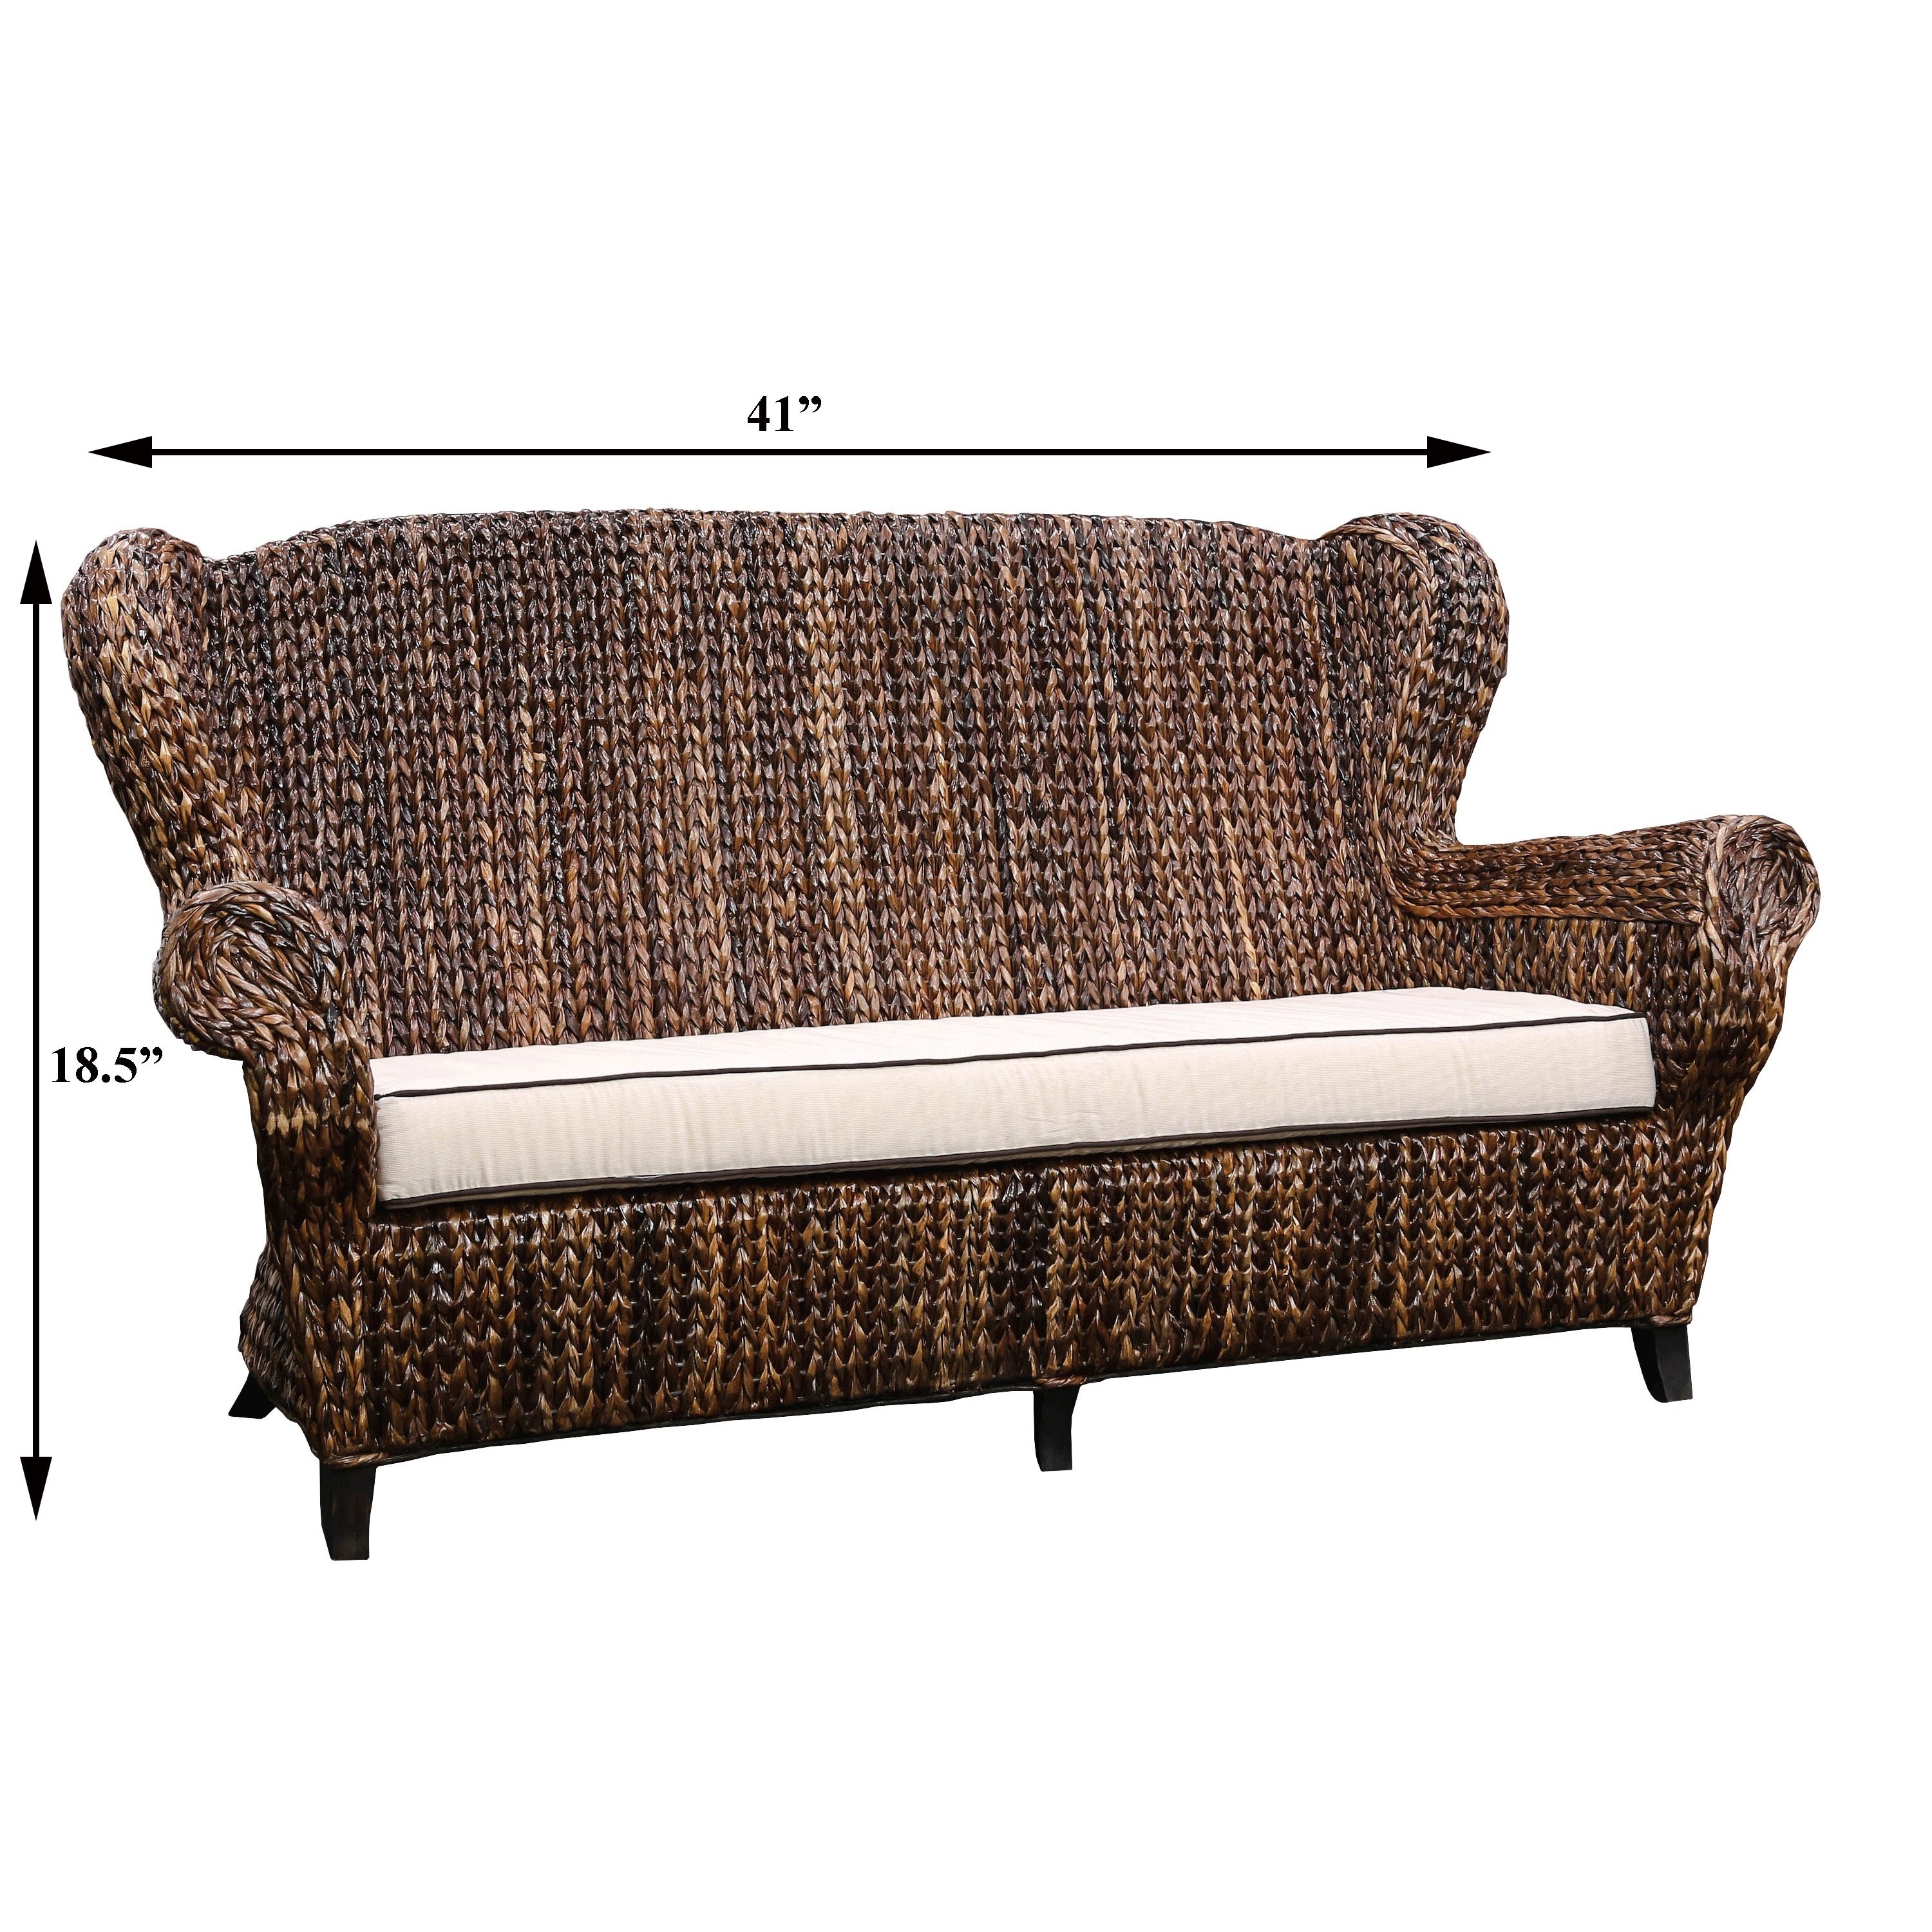 wicker sofa set philippines navy blue sectional with white piping rattan bed home the honoroak